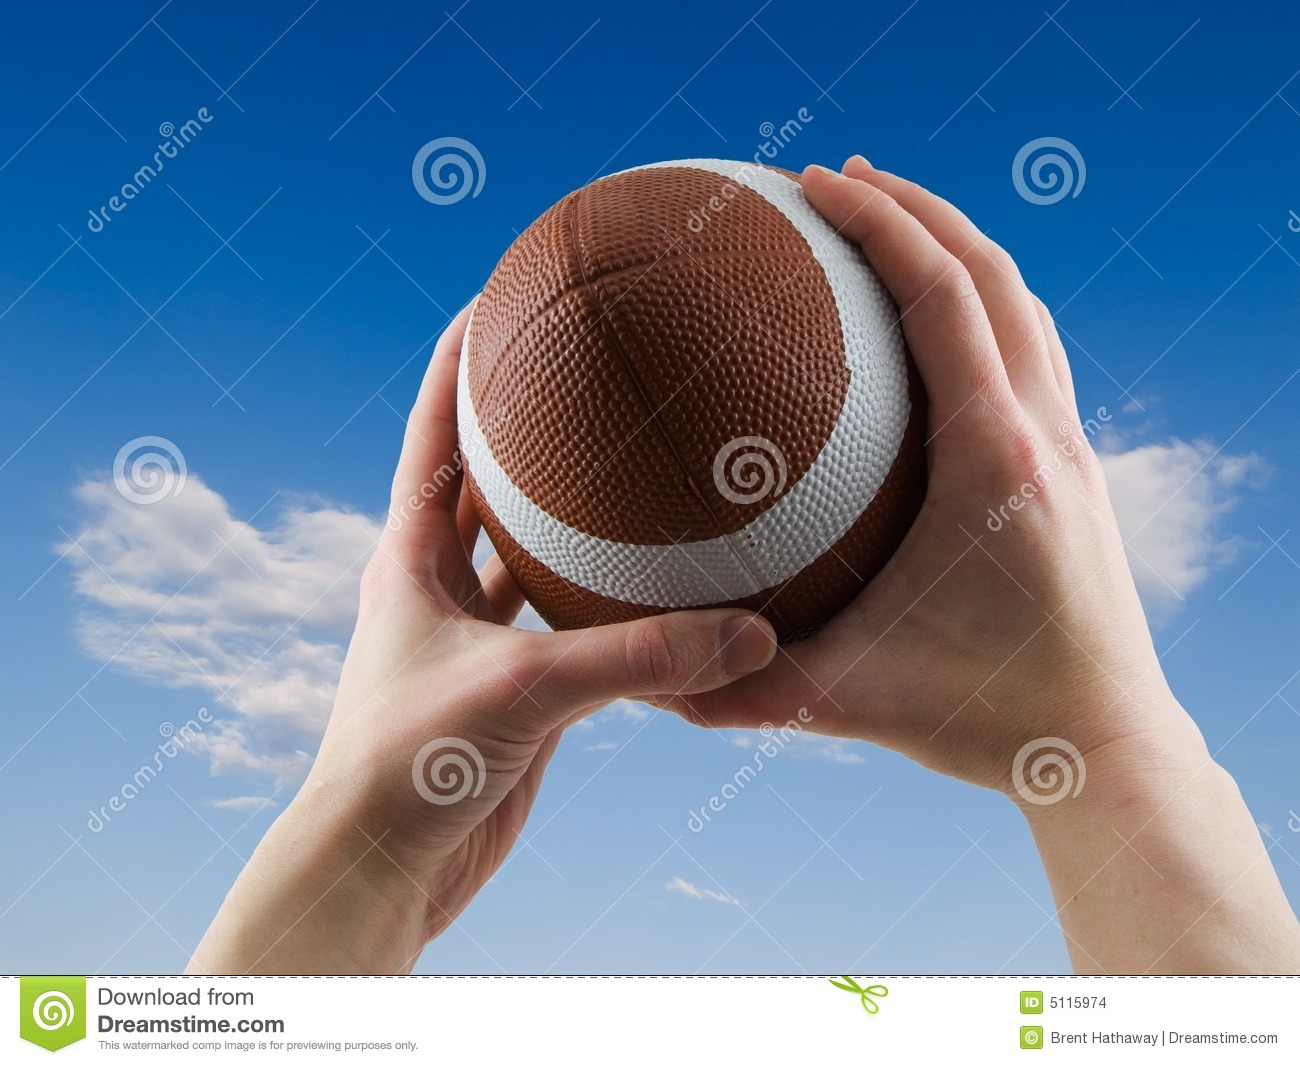 how to throw and catch a football